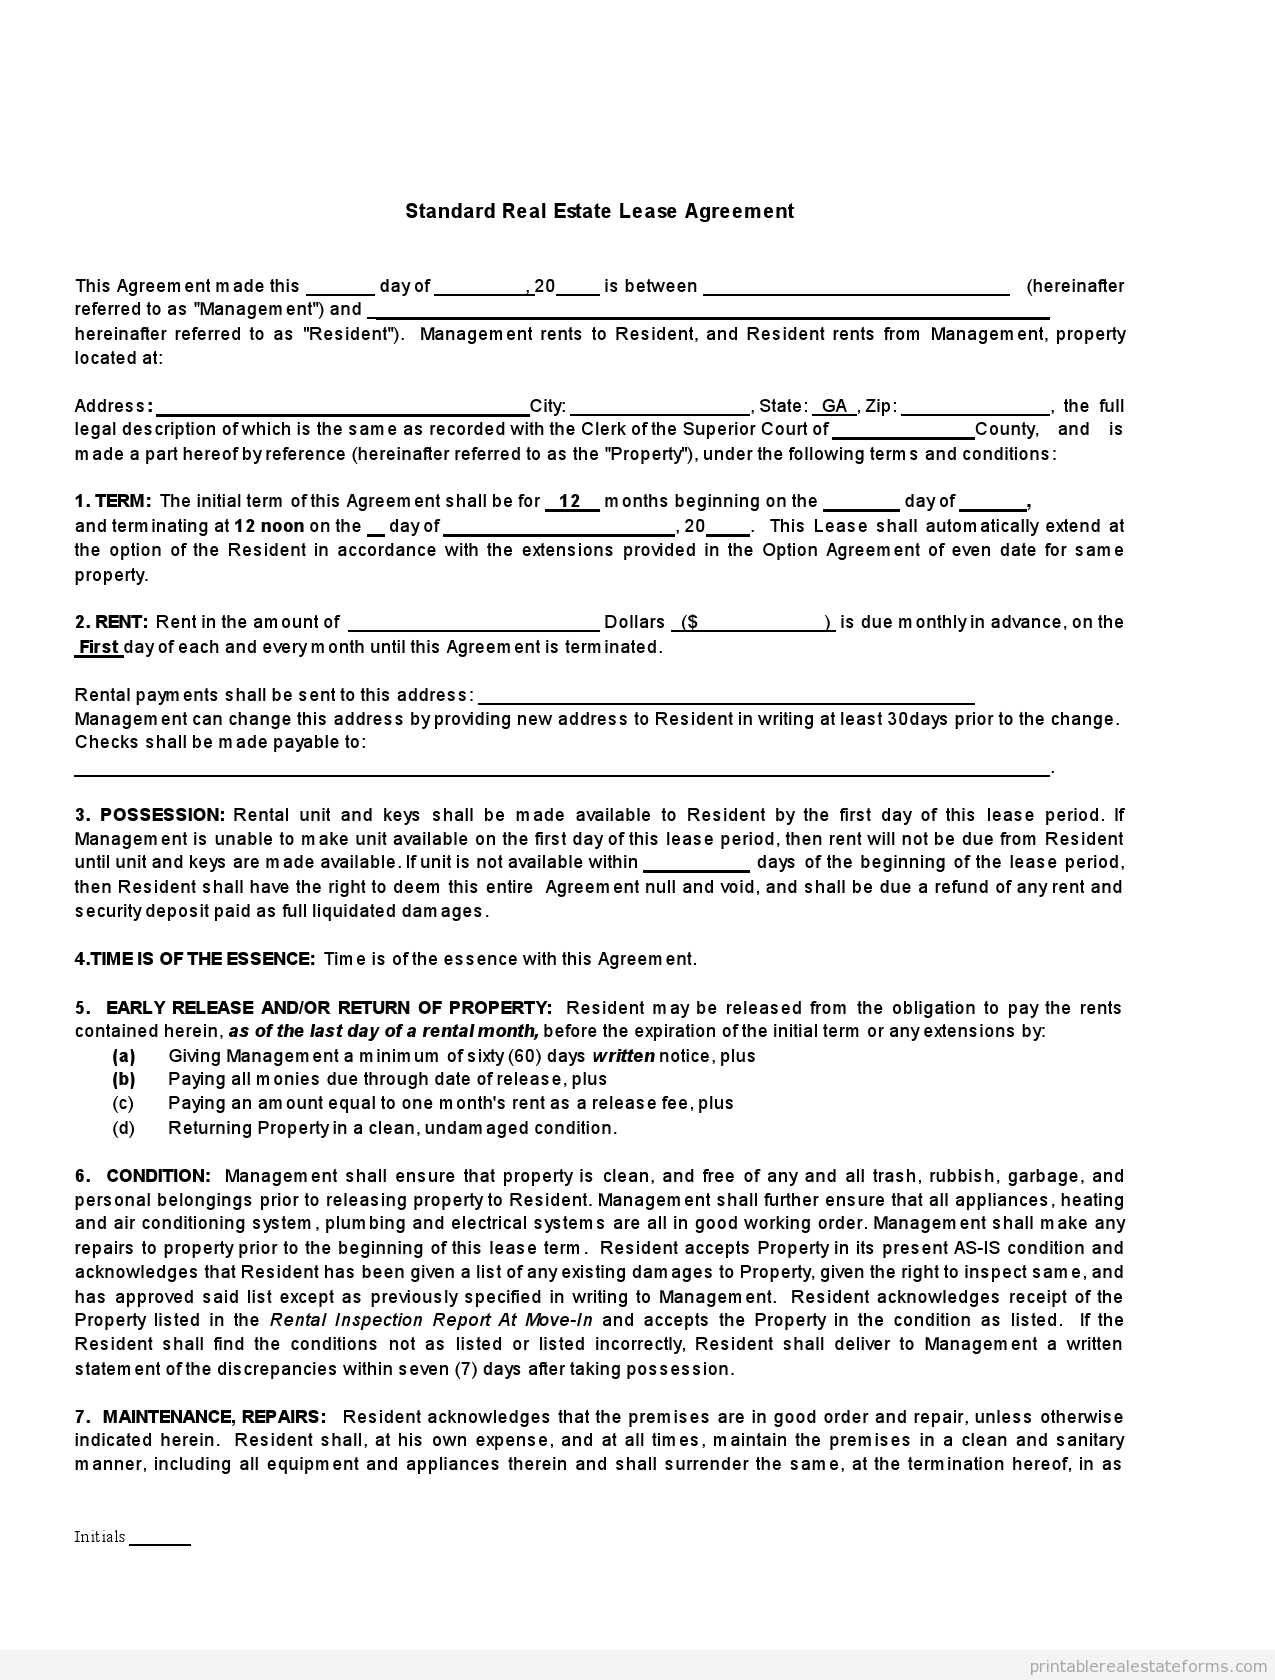 Sample Printable Standard Real Estate Lease Agreement Buying Form Real Estate Lease Rental Agreement Templates Real Estate Forms